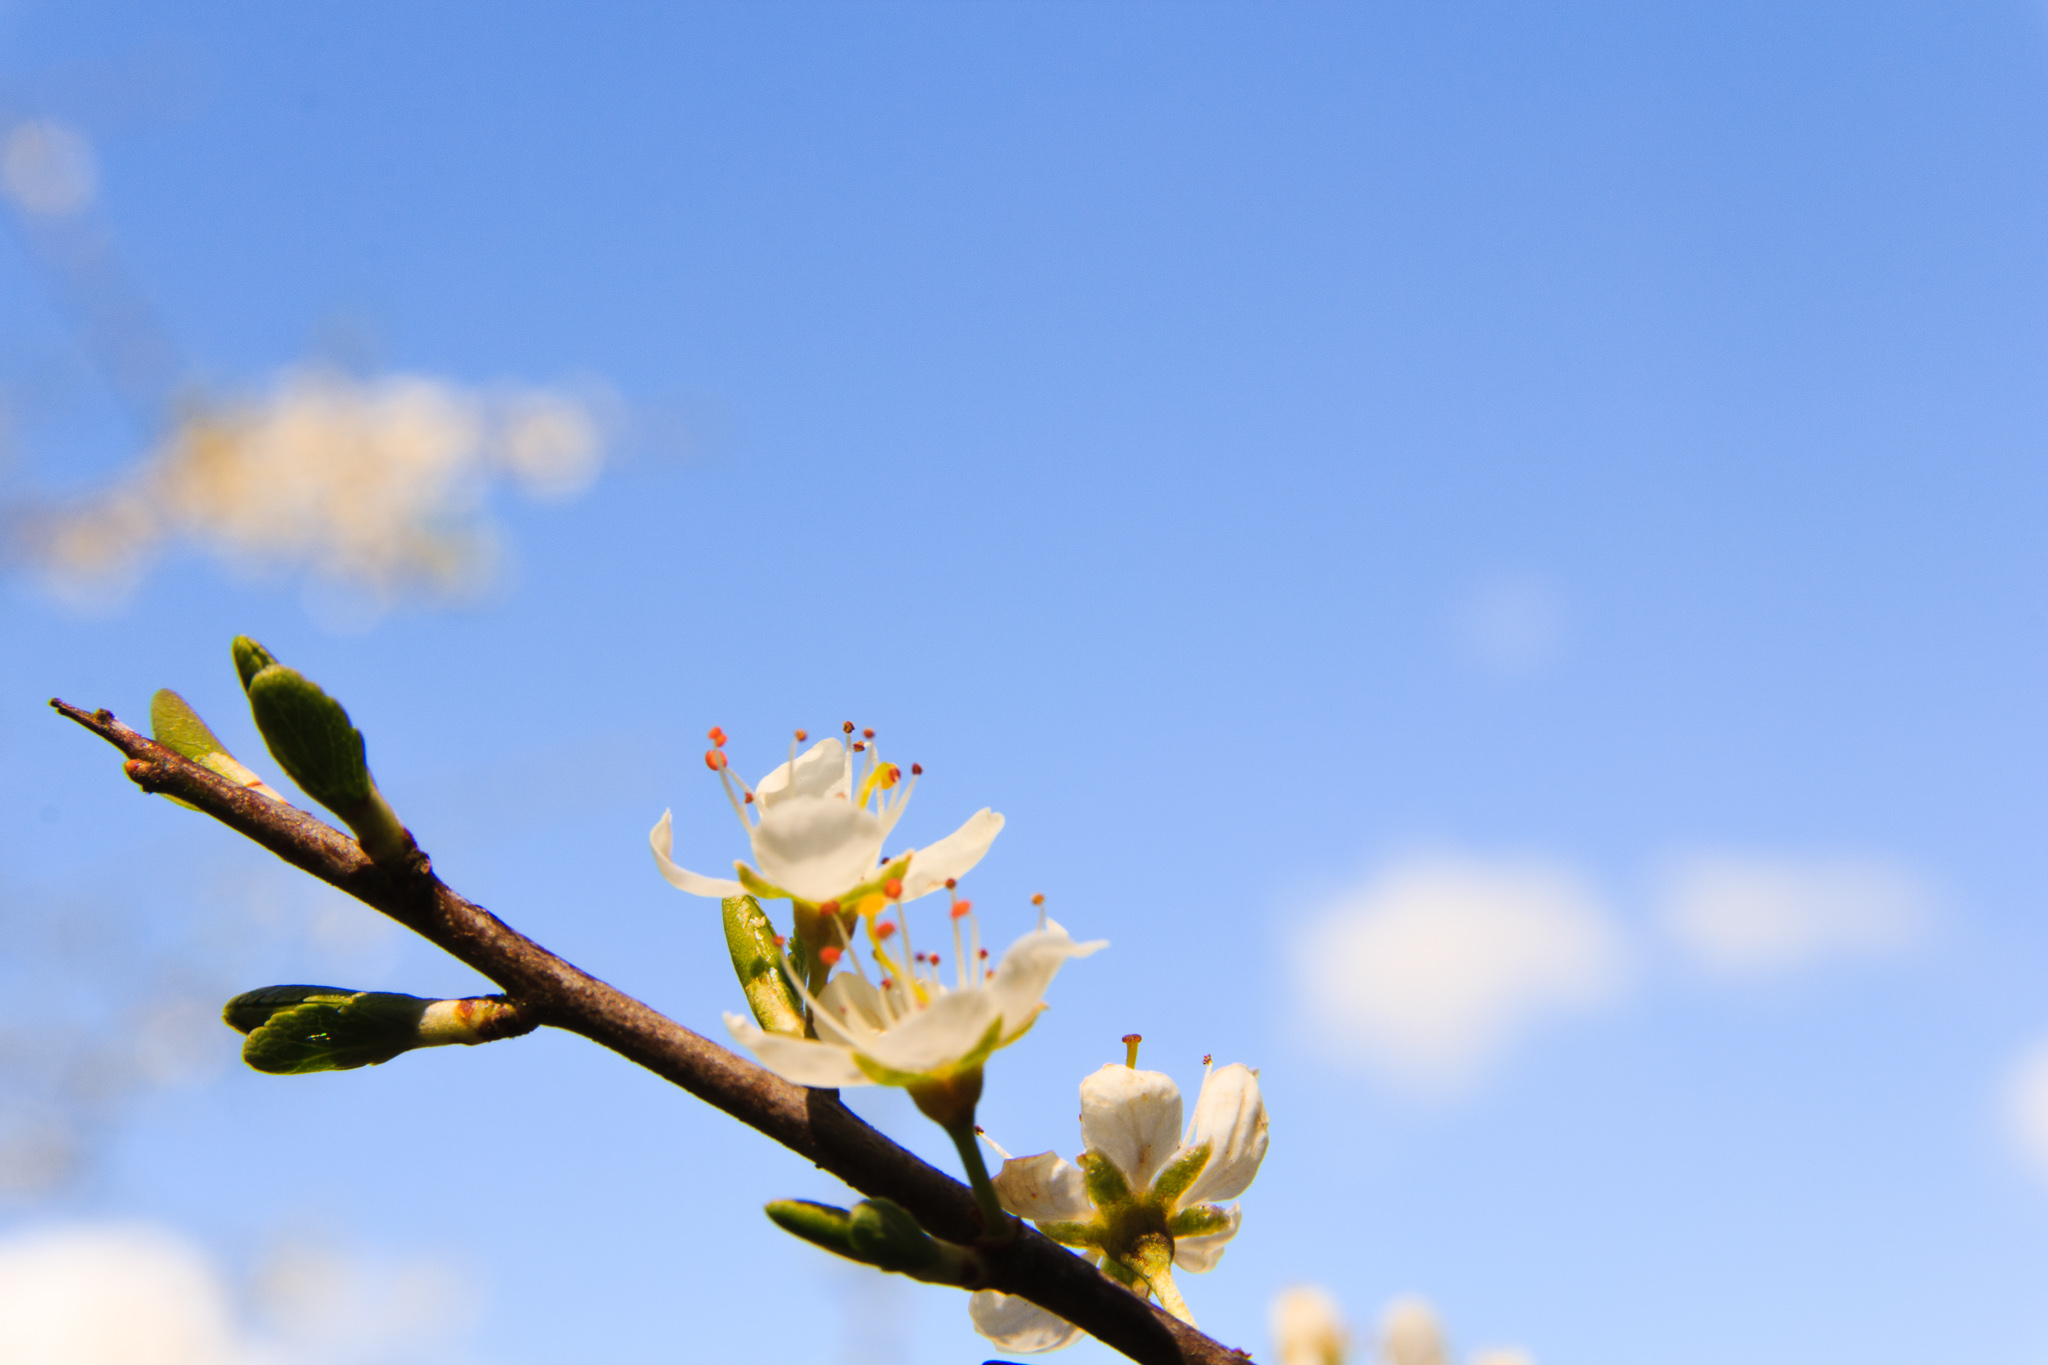 -The Early Blossom- Canon EOS 60D (Sigma 17-70mm F2.8-4 DC Macro C, 70 mm, f/16.0, 1/50s, ISO100)